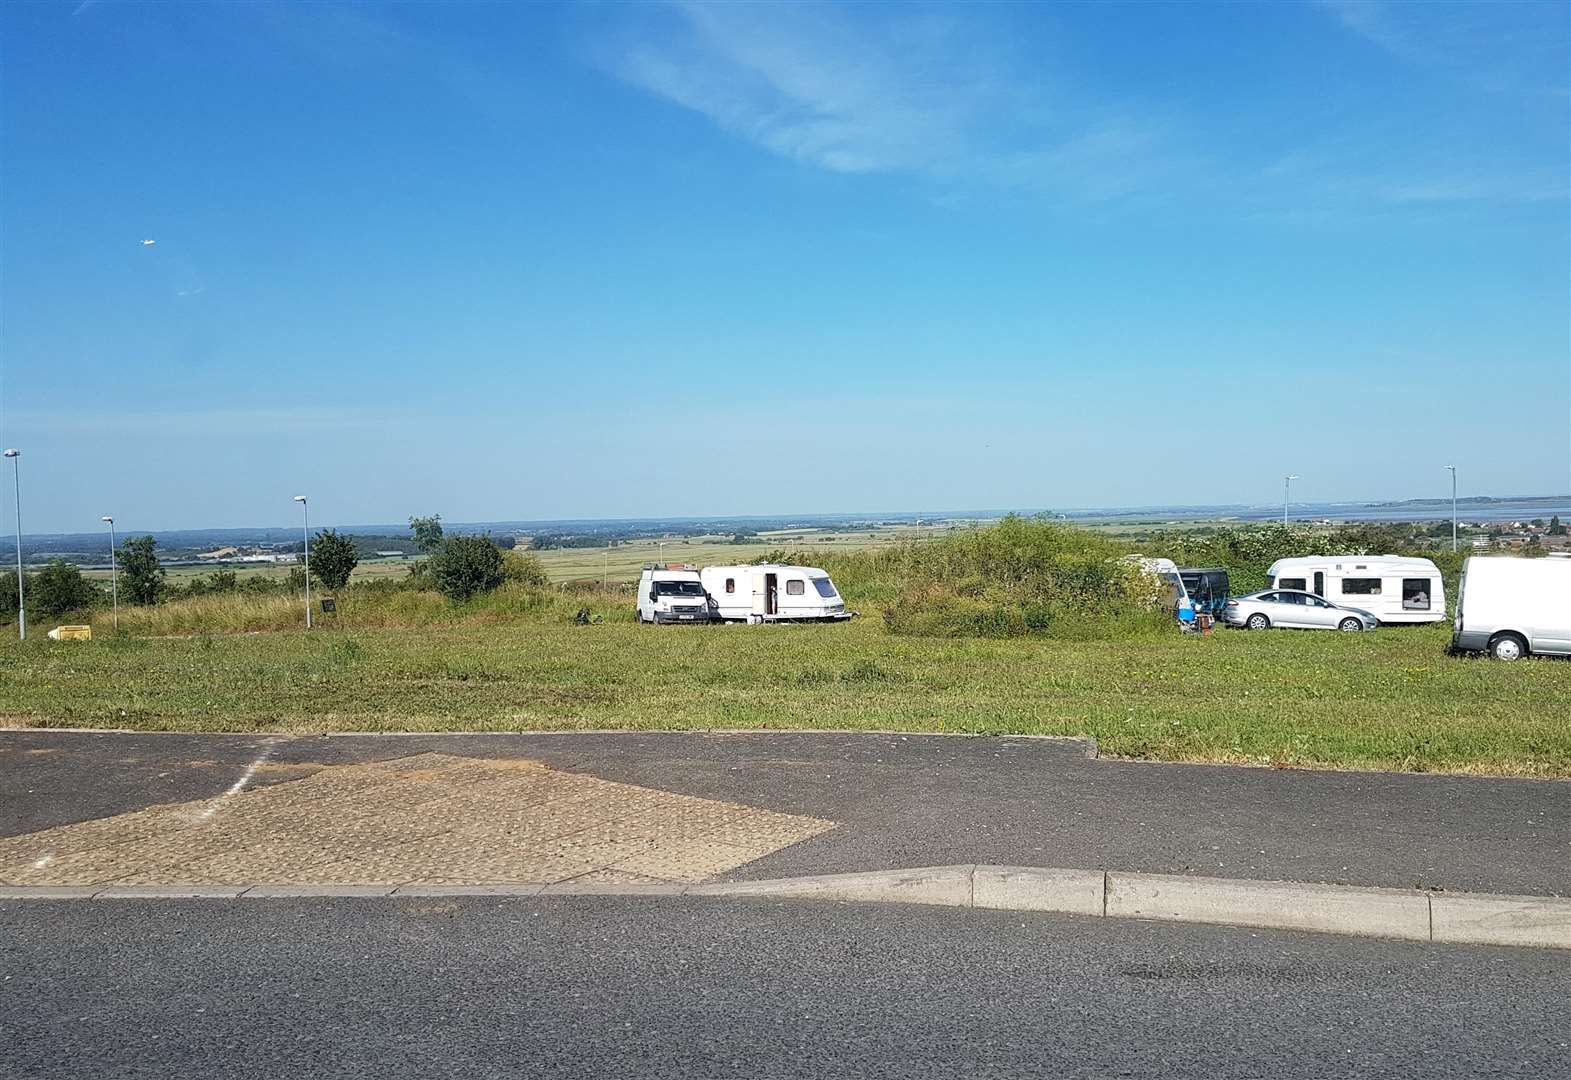 Travellers pitch up on 'dangerous' building site